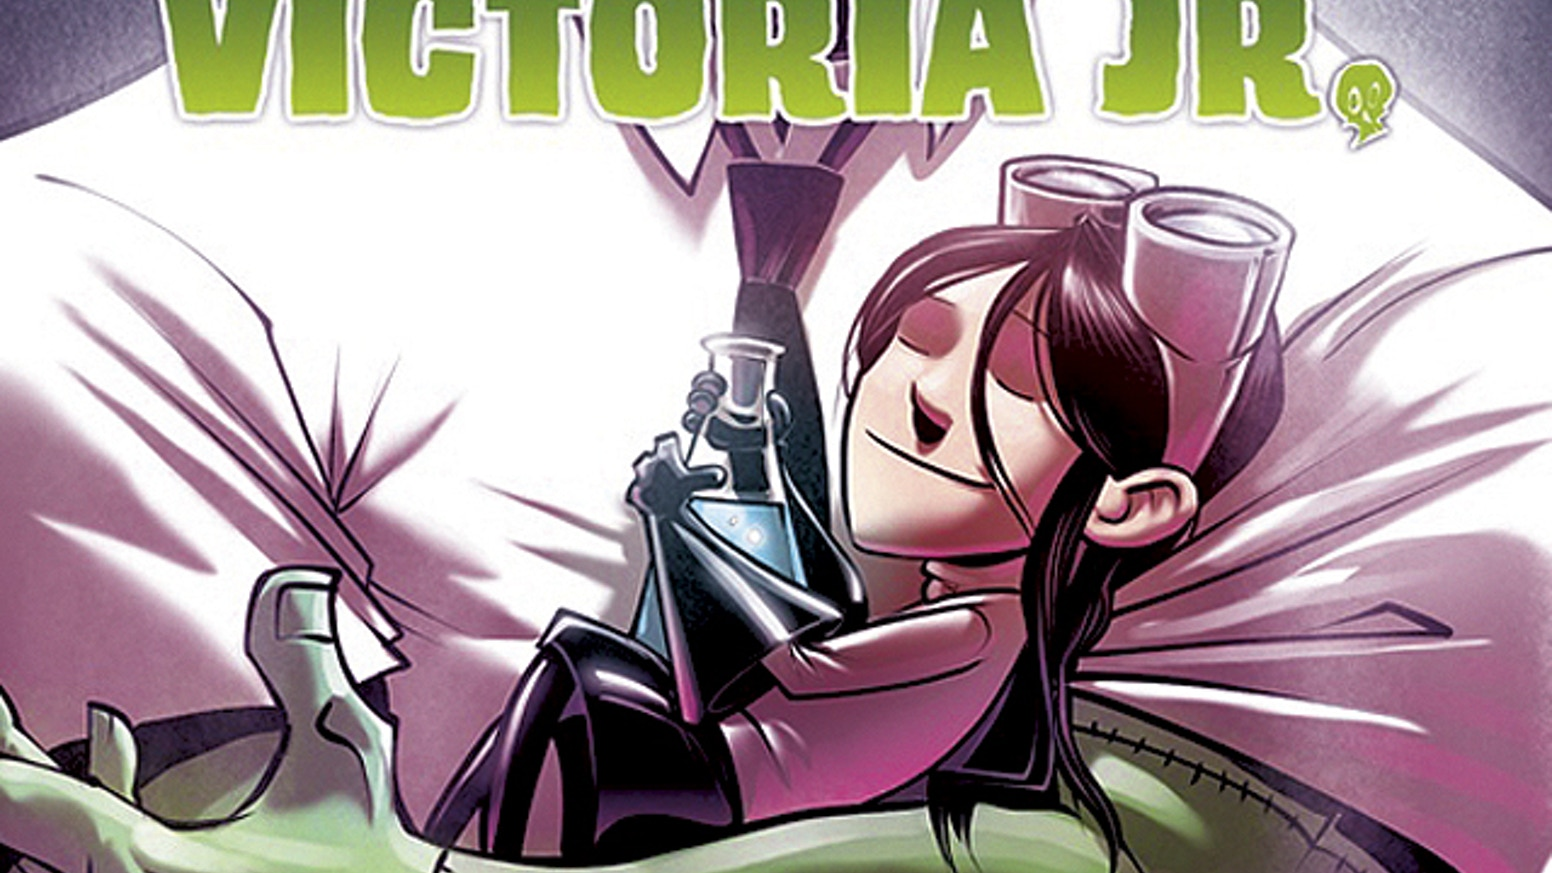 Victoria Jr. is a collection of short stories about a bold young human girl who lives in a city of monsters and creatures.